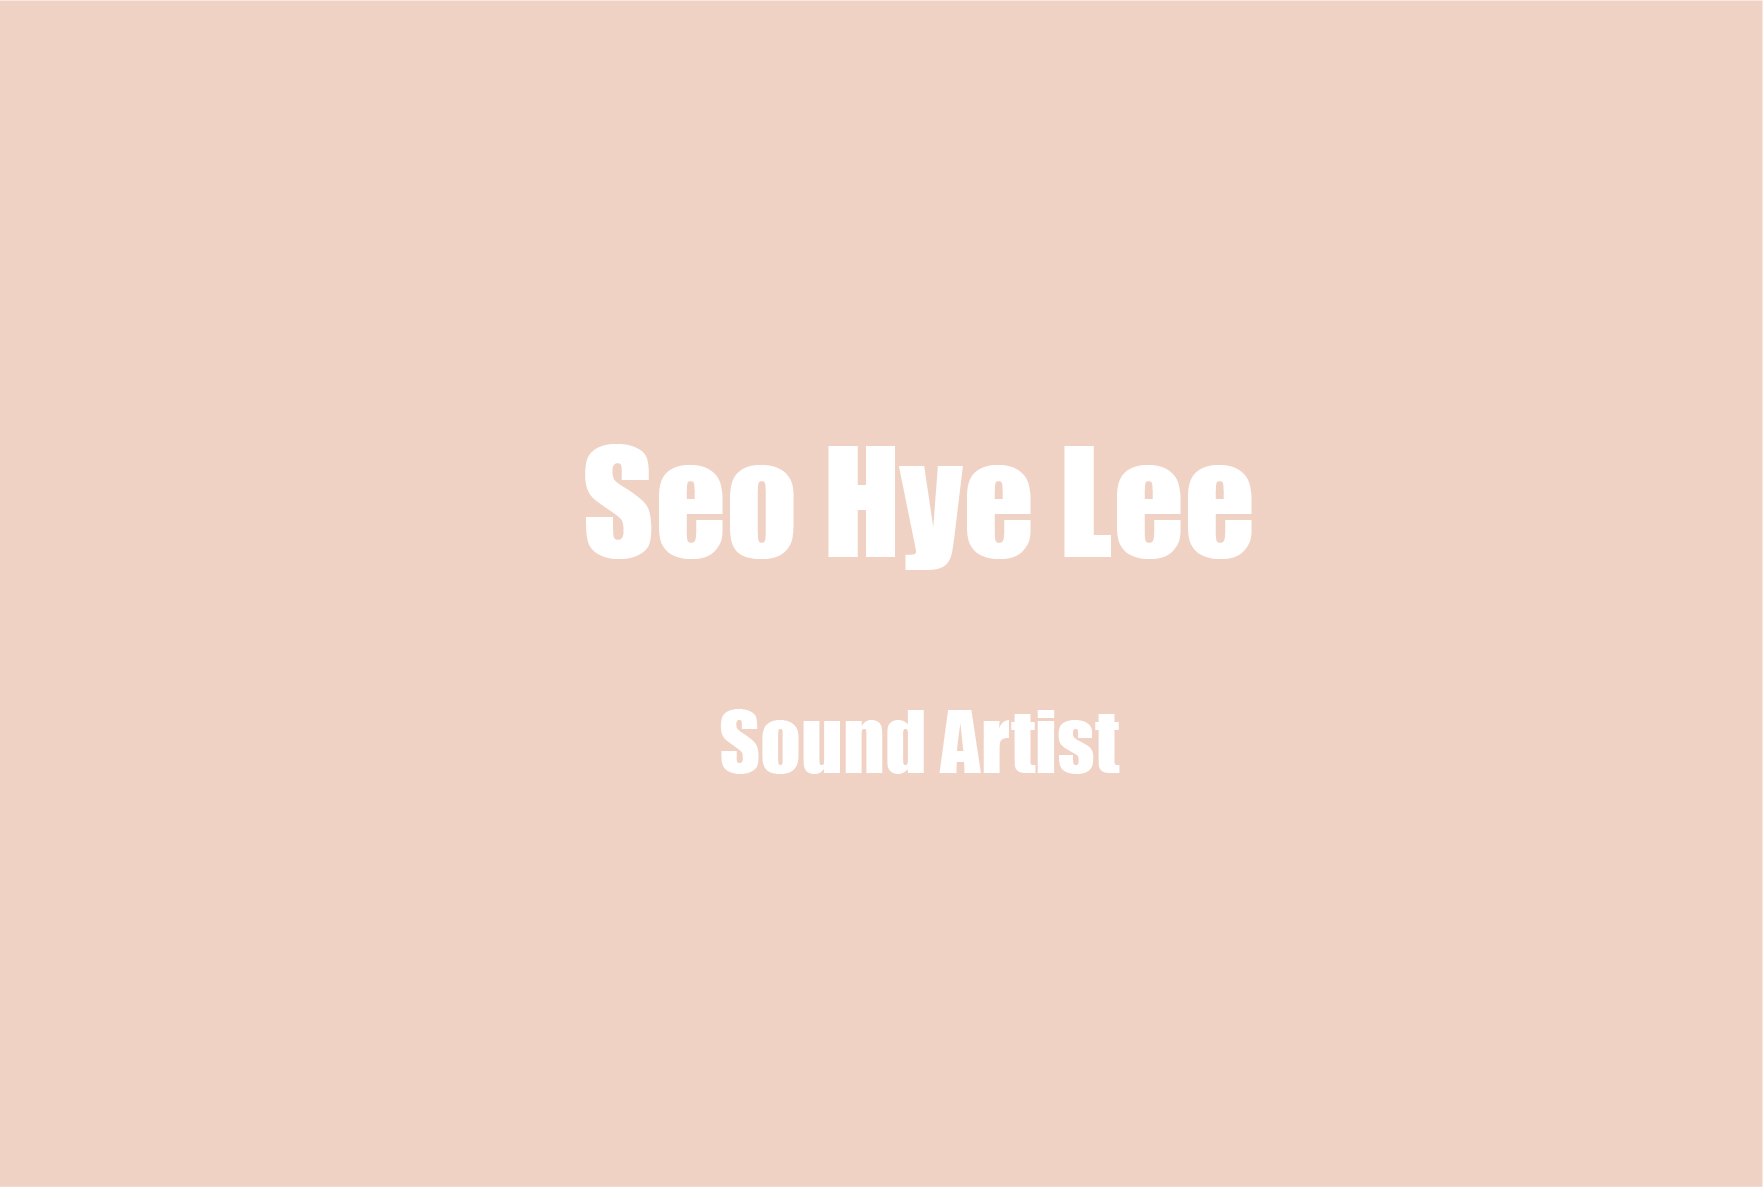 Introducing New Forms of Narrative: Berlin Based Artist Seo Hye Lee on Navigating Hearing Loss and Taking Inspiration from Her Unique Sonic Identity